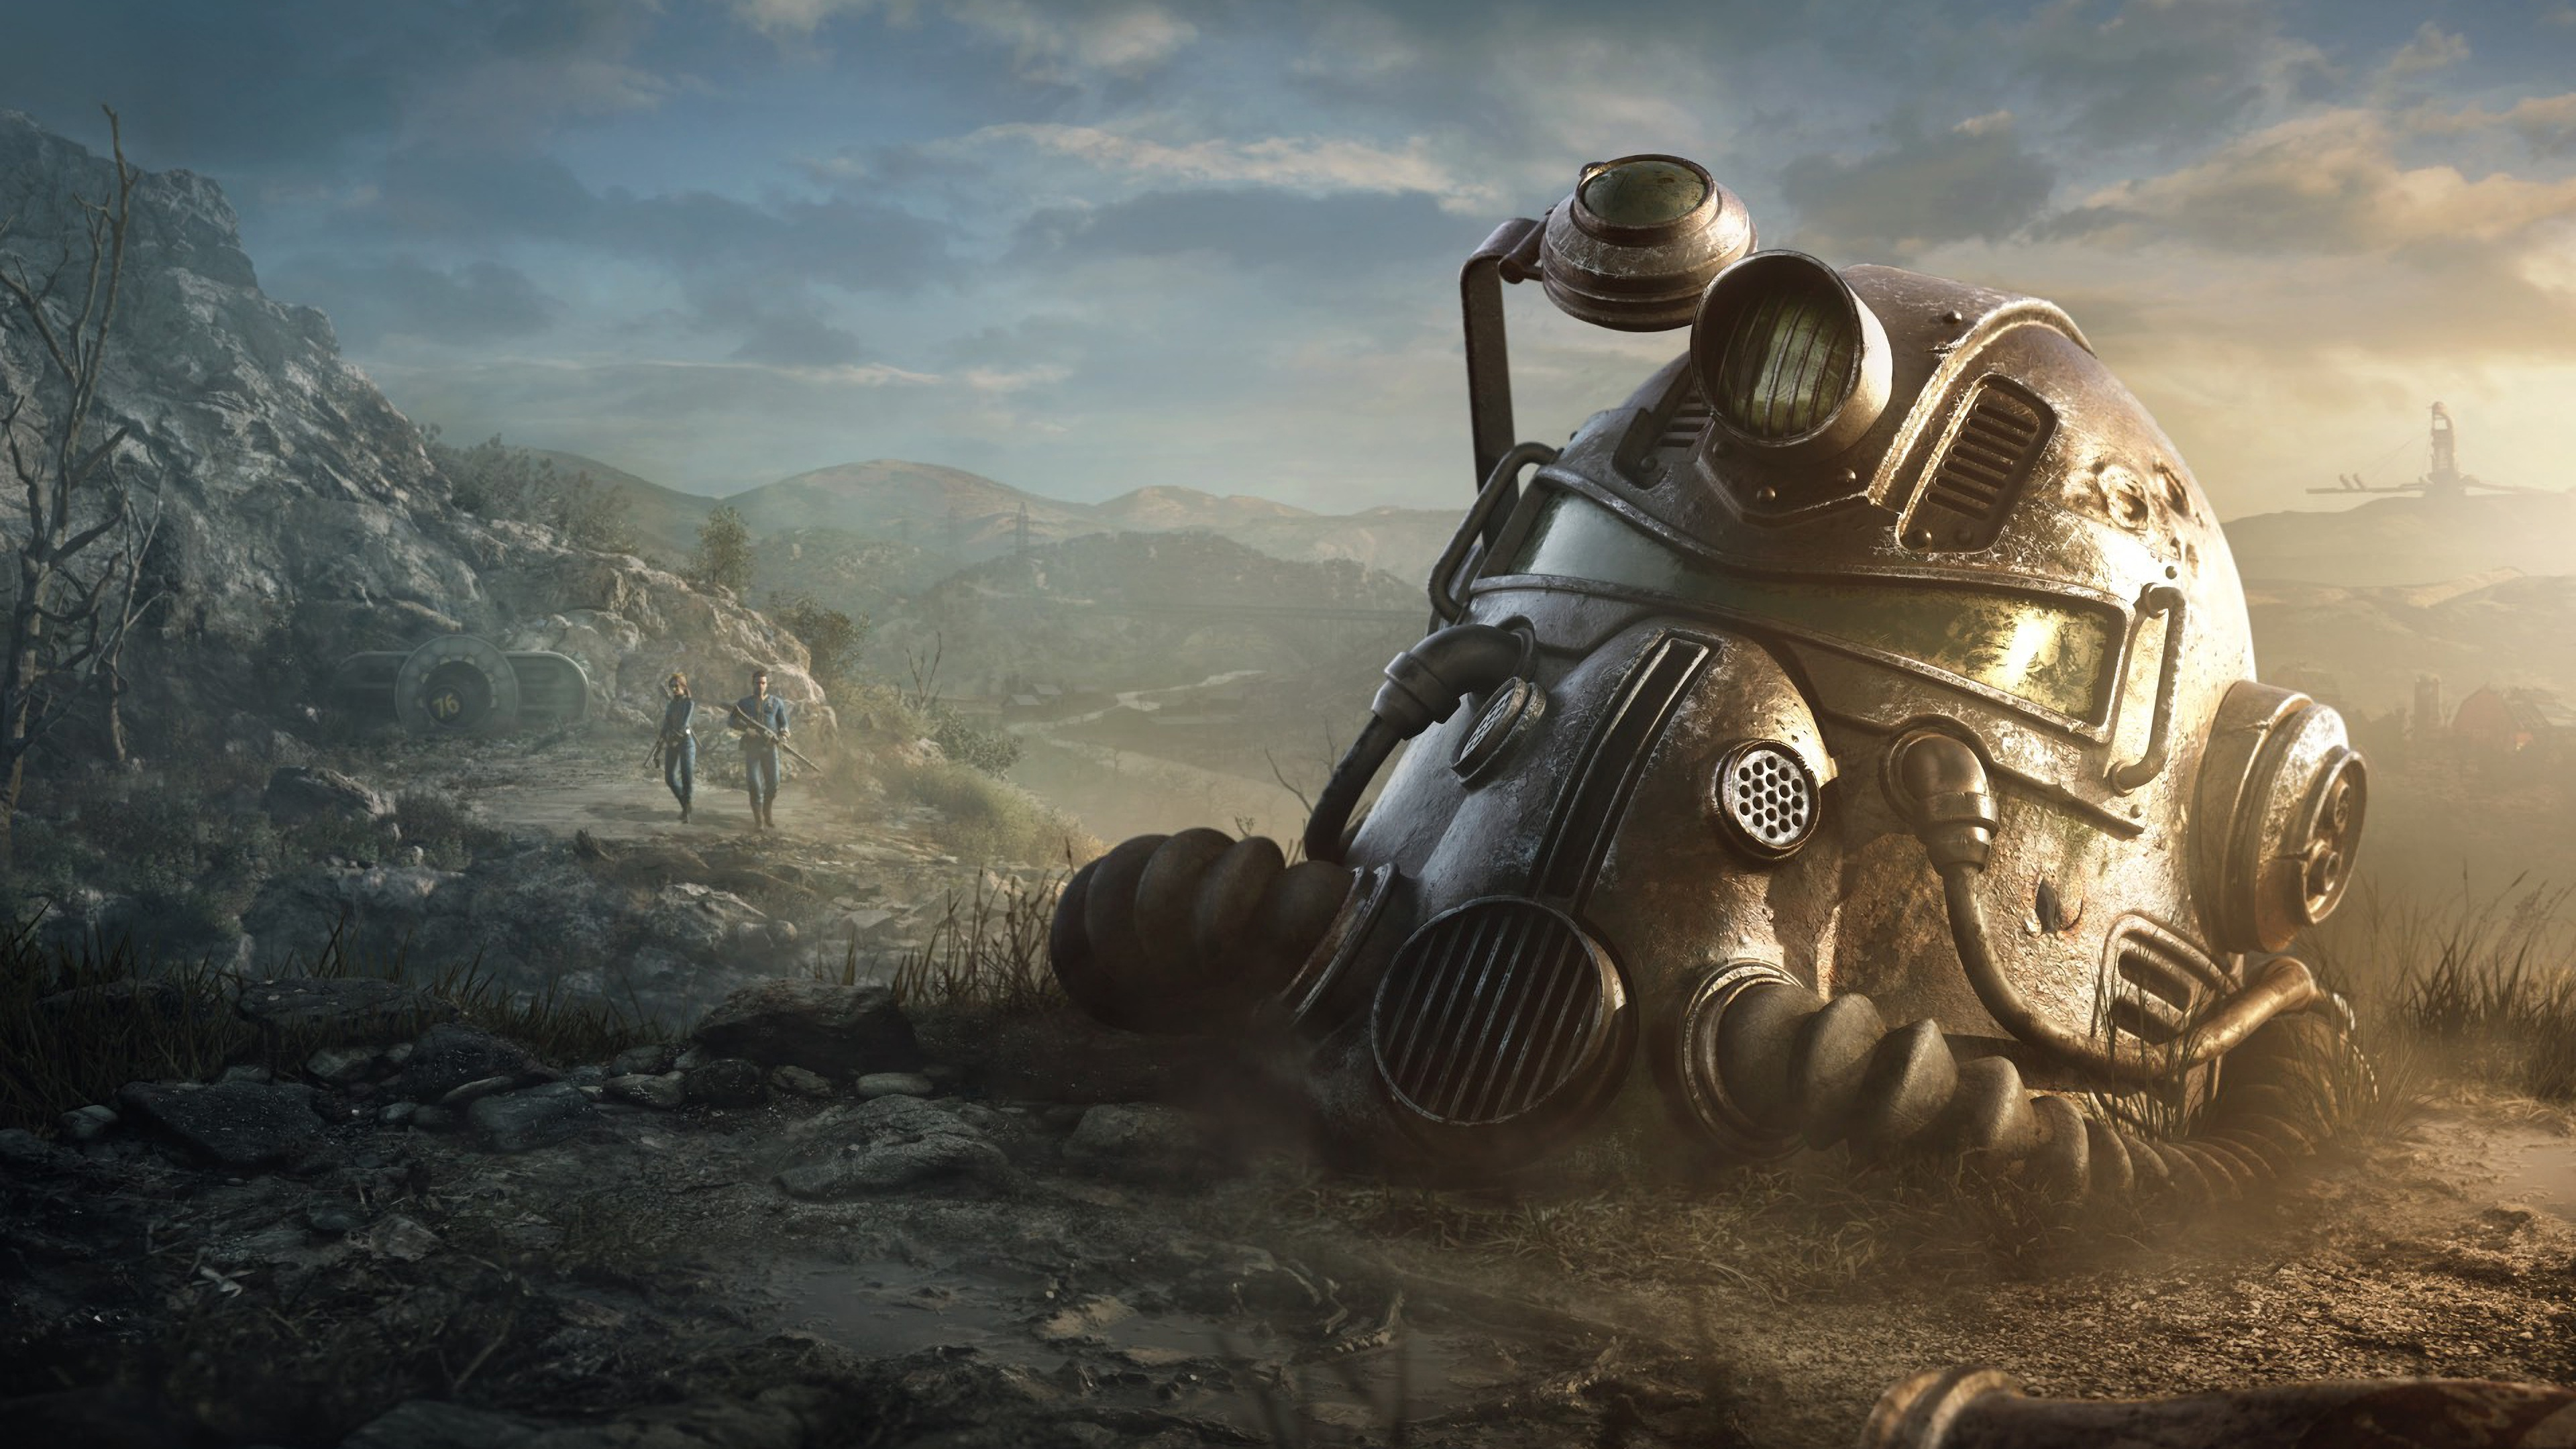 Bethesda has confirmed an October release date for the Fallout 76 beta